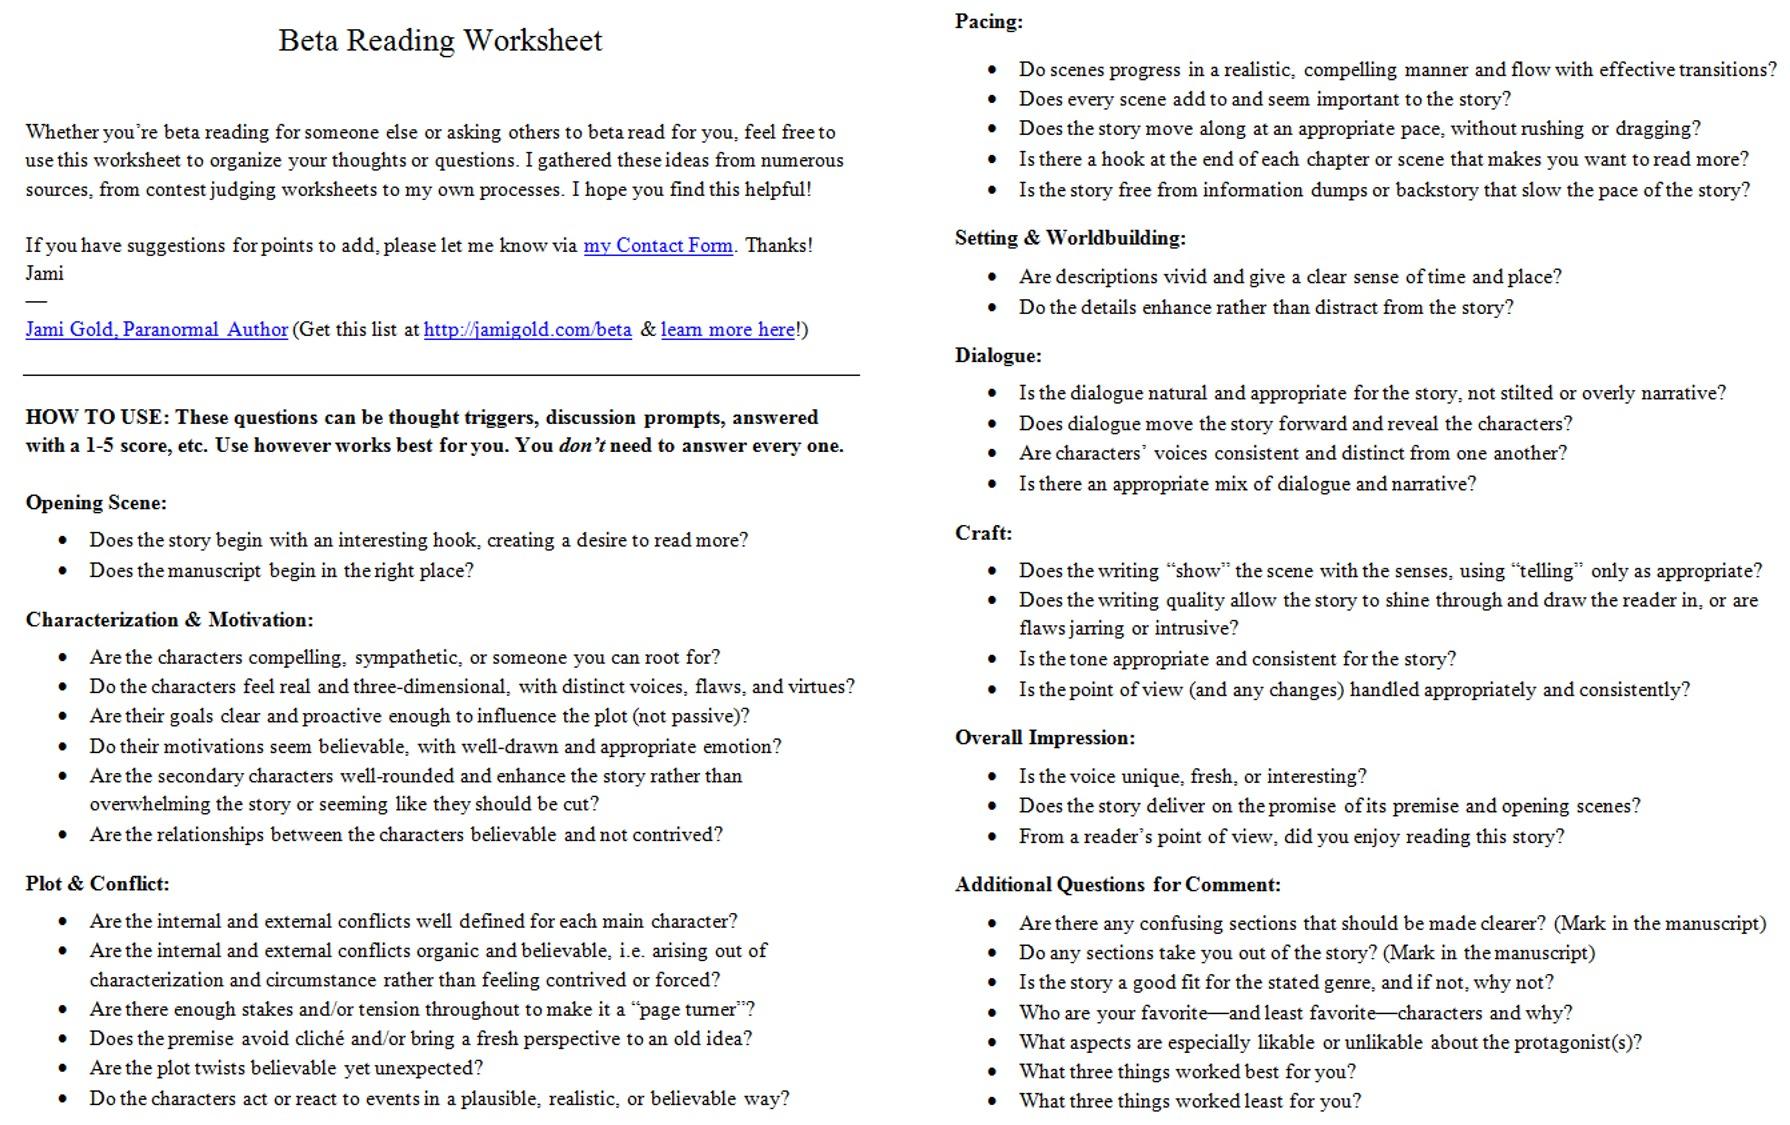 Weirdmailus  Sweet Worksheets For Writers  Jami Gold Paranormal Author With Marvelous Screen Shot Of The Twopage Beta Reading Worksheet With Cute Coordinates Worksheets Ks Also Worksheet Function In Vba In Addition Counting Up To  Worksheets And Worksheets For Articles As Well As Free Printable Preschool Writing Worksheets Additionally Coordinates Pictures Worksheets From Jamigoldcom With Weirdmailus  Marvelous Worksheets For Writers  Jami Gold Paranormal Author With Cute Screen Shot Of The Twopage Beta Reading Worksheet And Sweet Coordinates Worksheets Ks Also Worksheet Function In Vba In Addition Counting Up To  Worksheets From Jamigoldcom